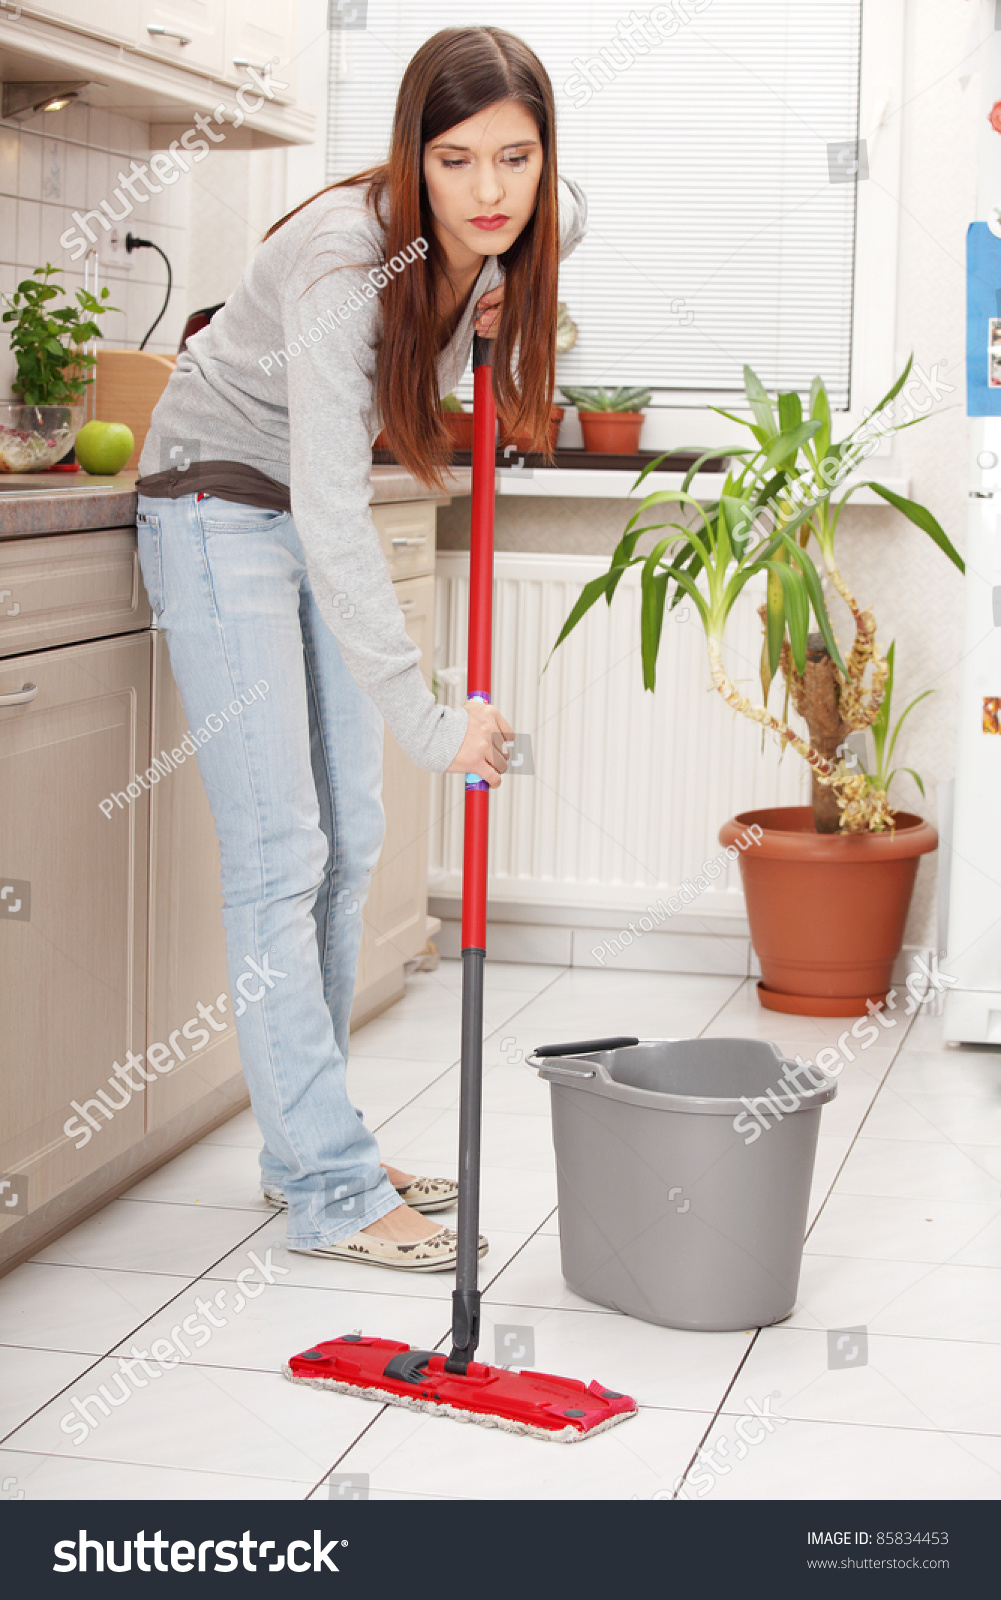 Kitchen Floor Mop Woman Holding Mop Cleaning Kitchen Floor Stock Photo 85834453